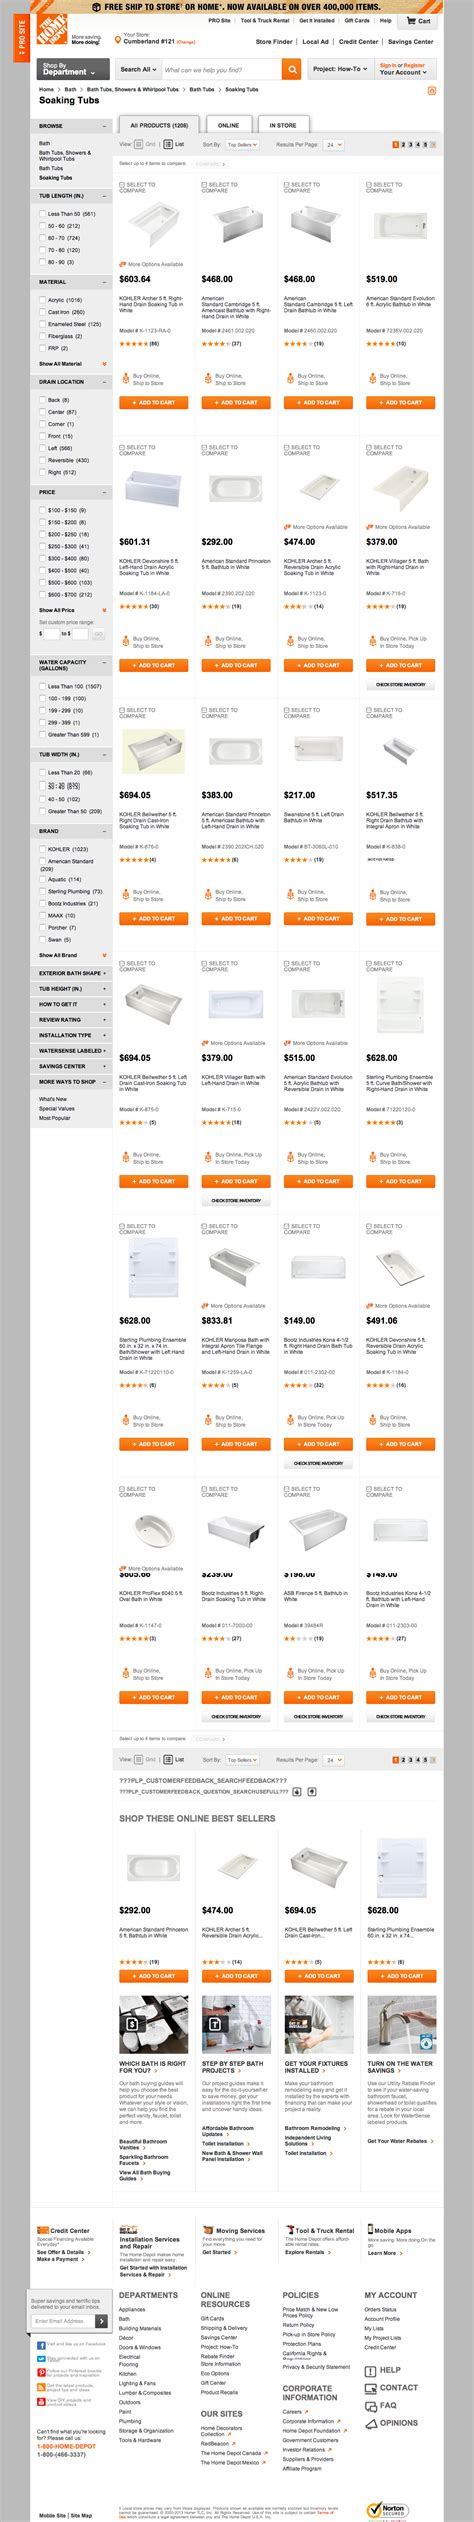 home depot product list images